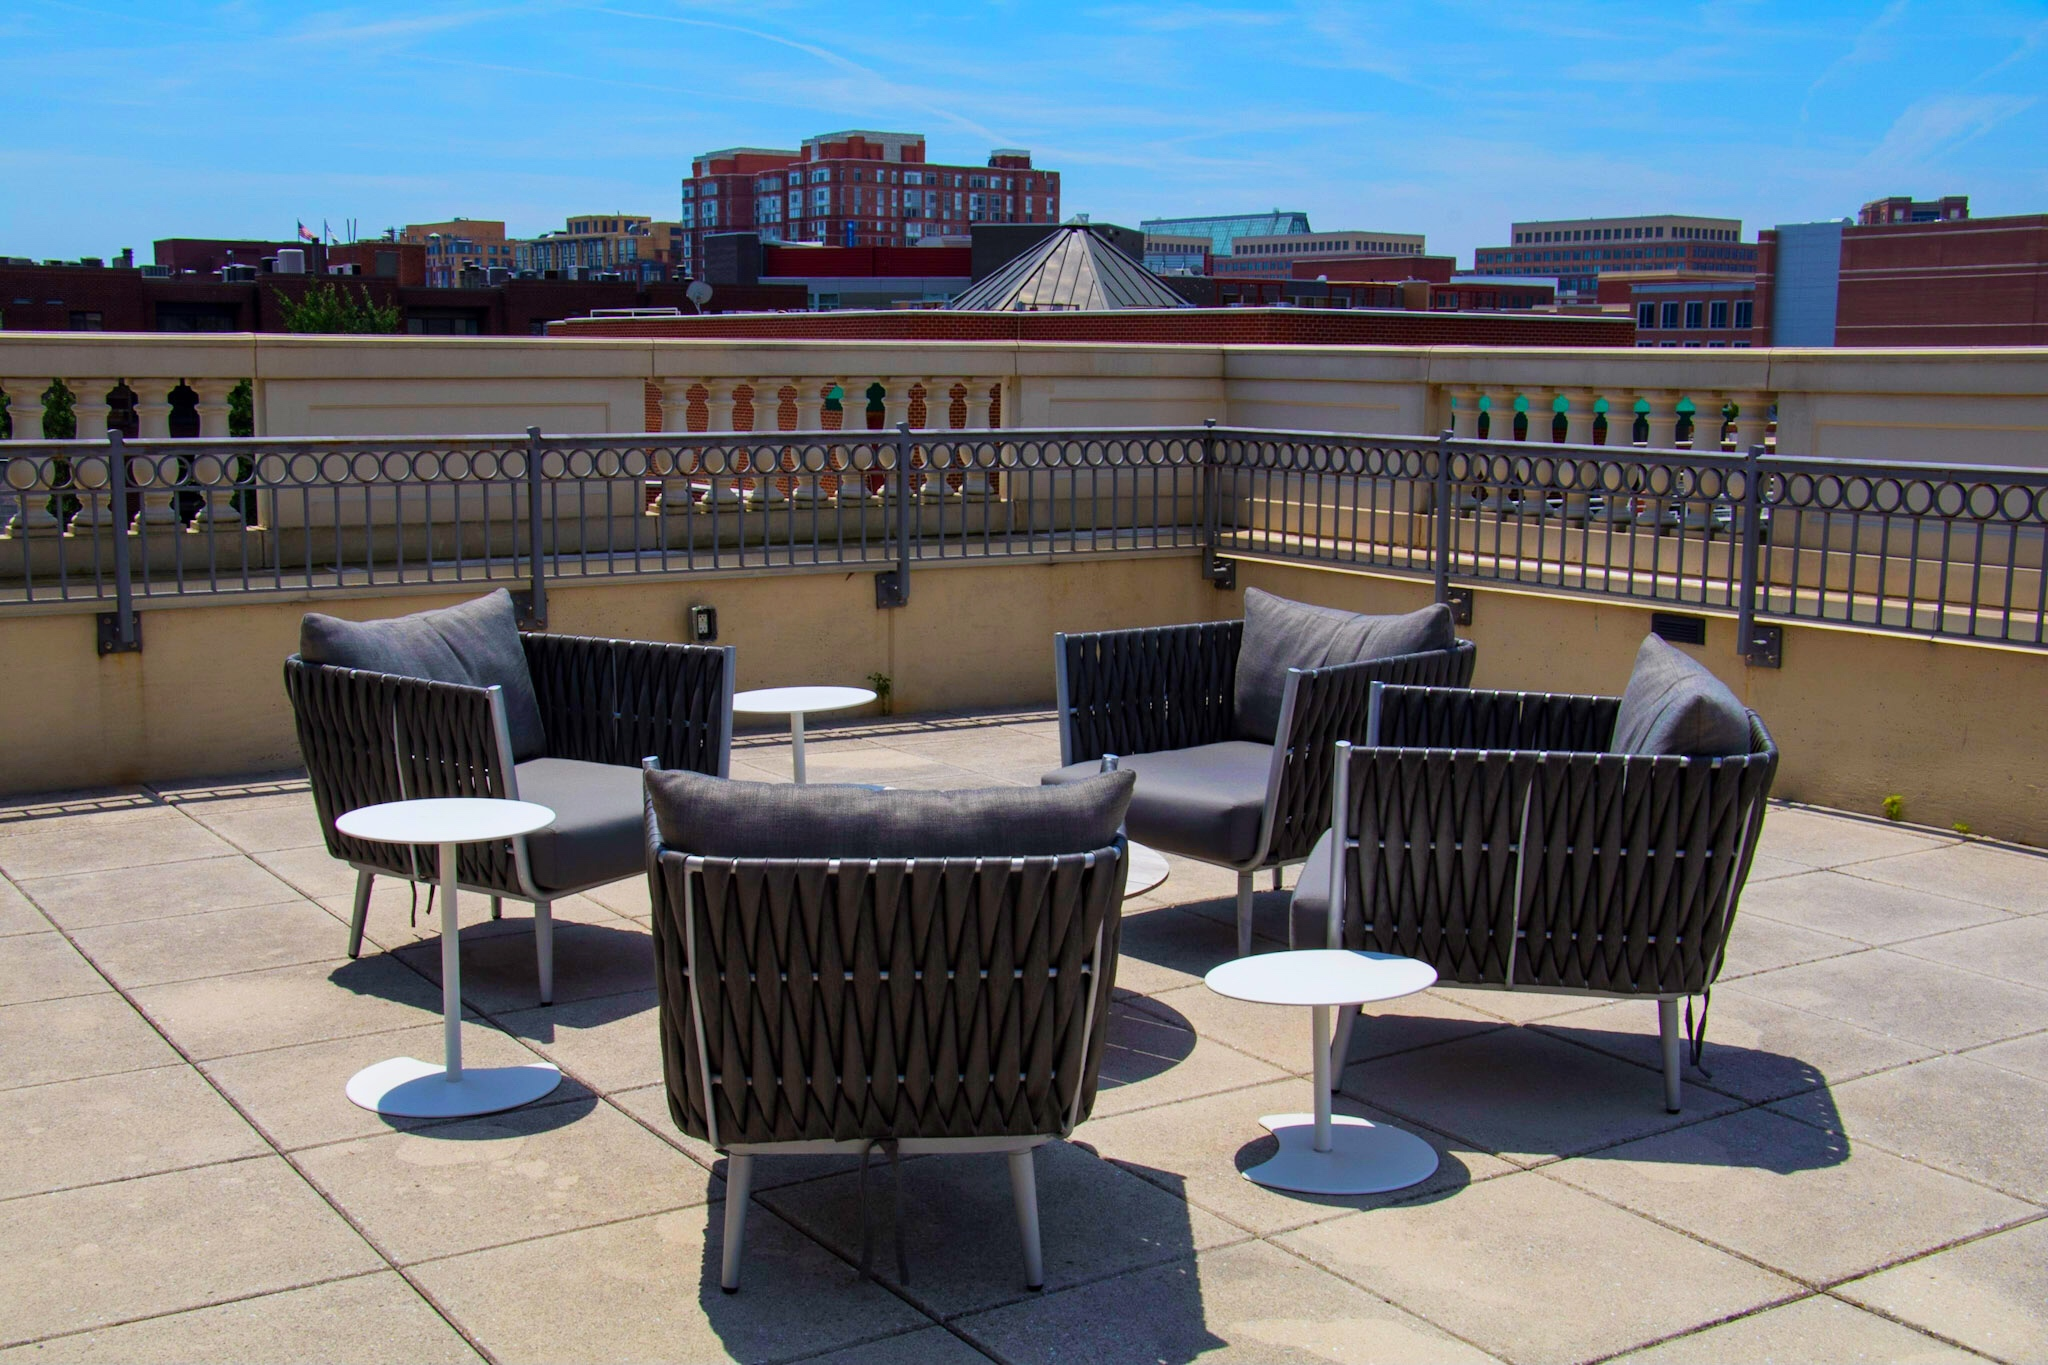 The Kimpton Lorien Hotel Deck